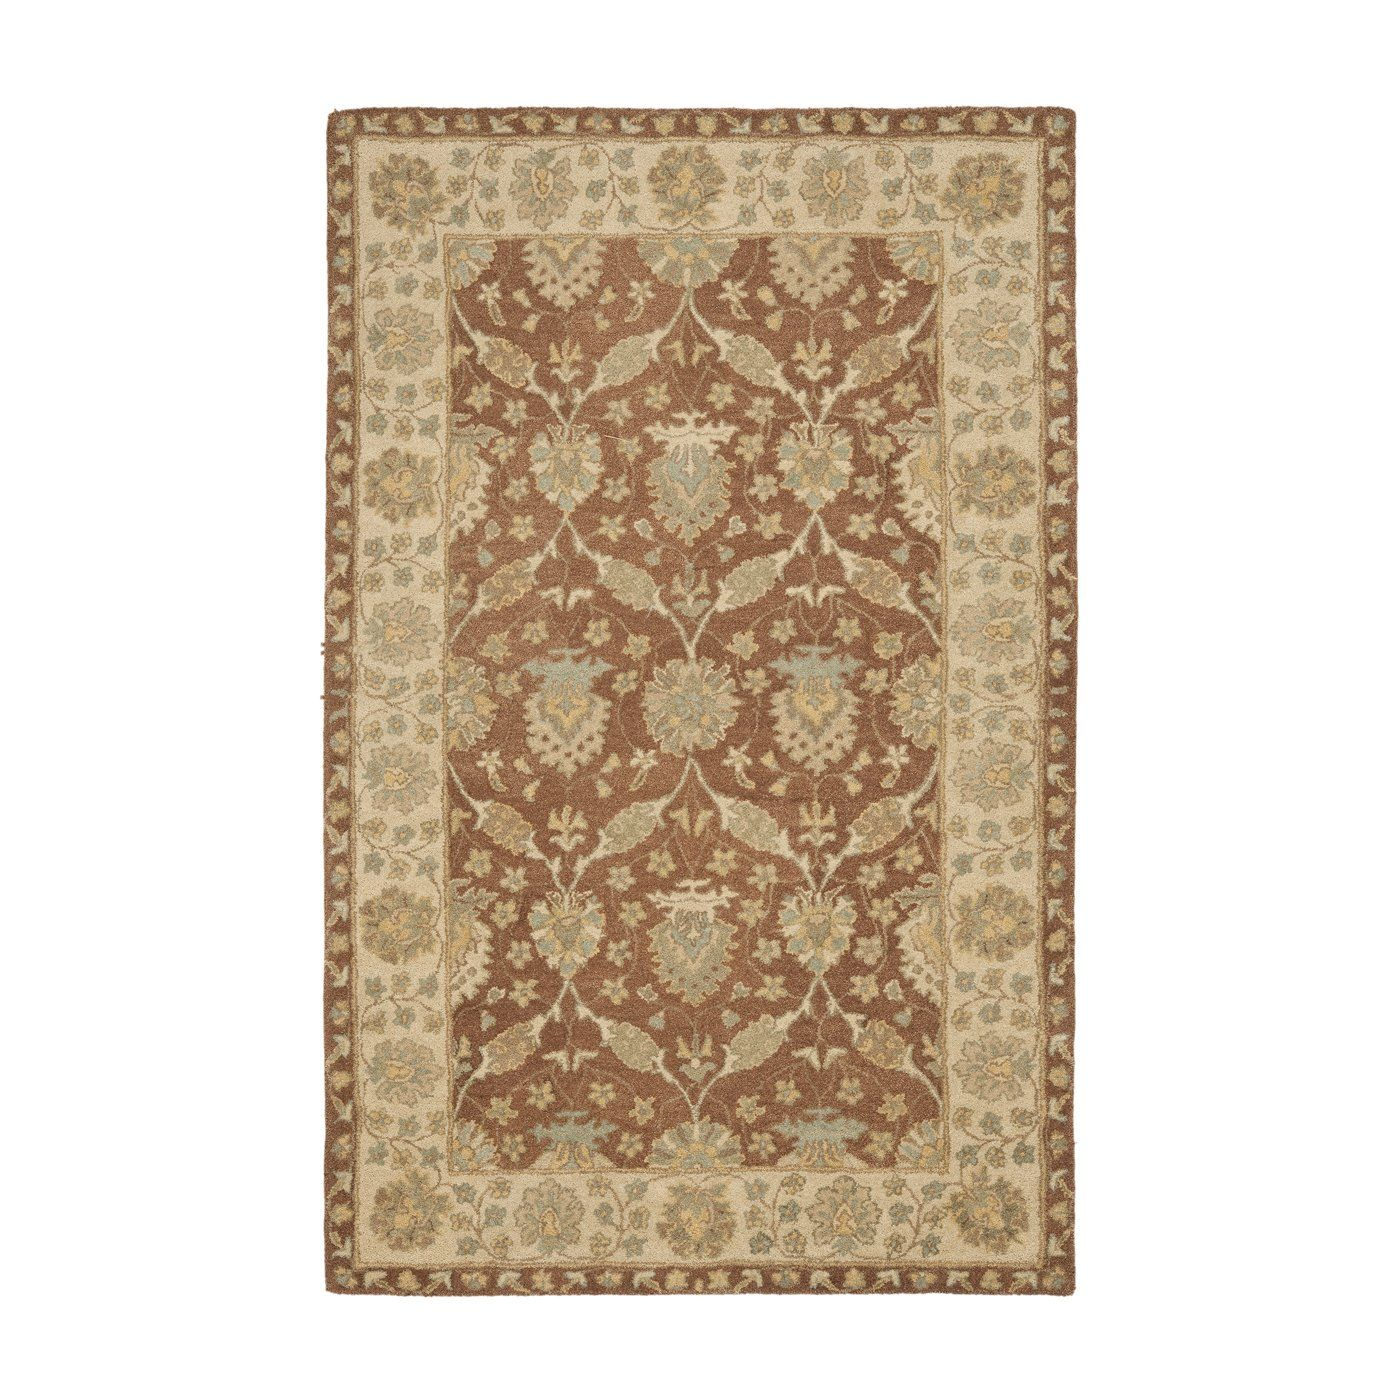 Safavieh At315a Antiquities Area Rug Brown Lowe S Canada Area